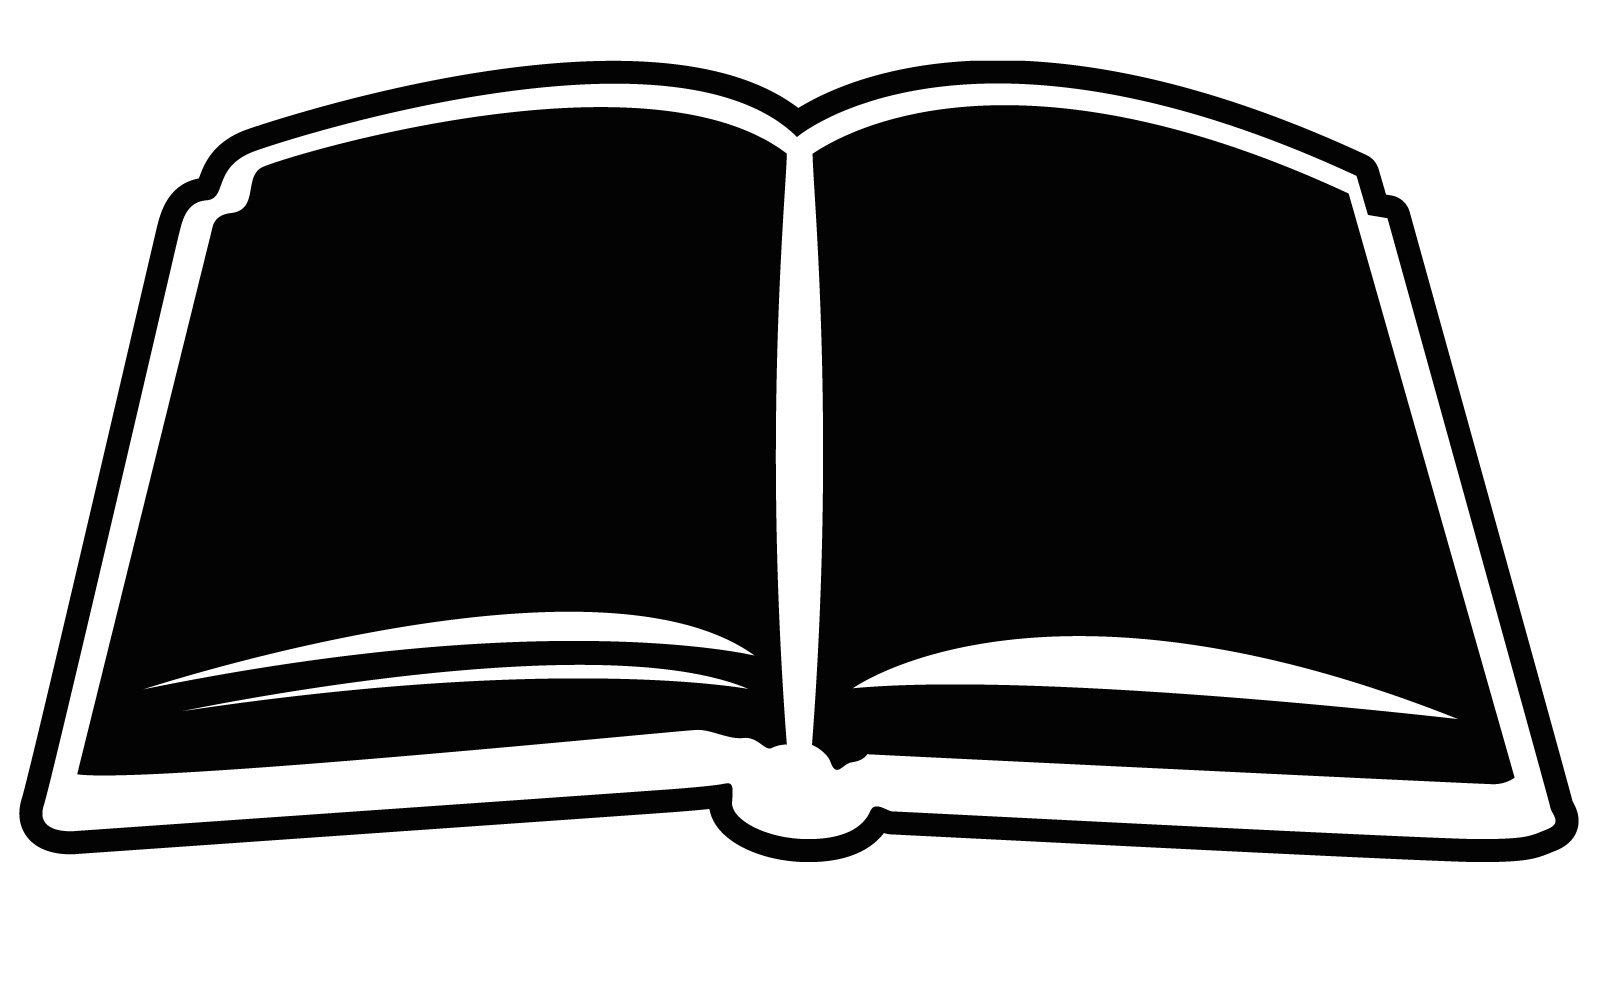 hight resolution of open book clip art image 25778